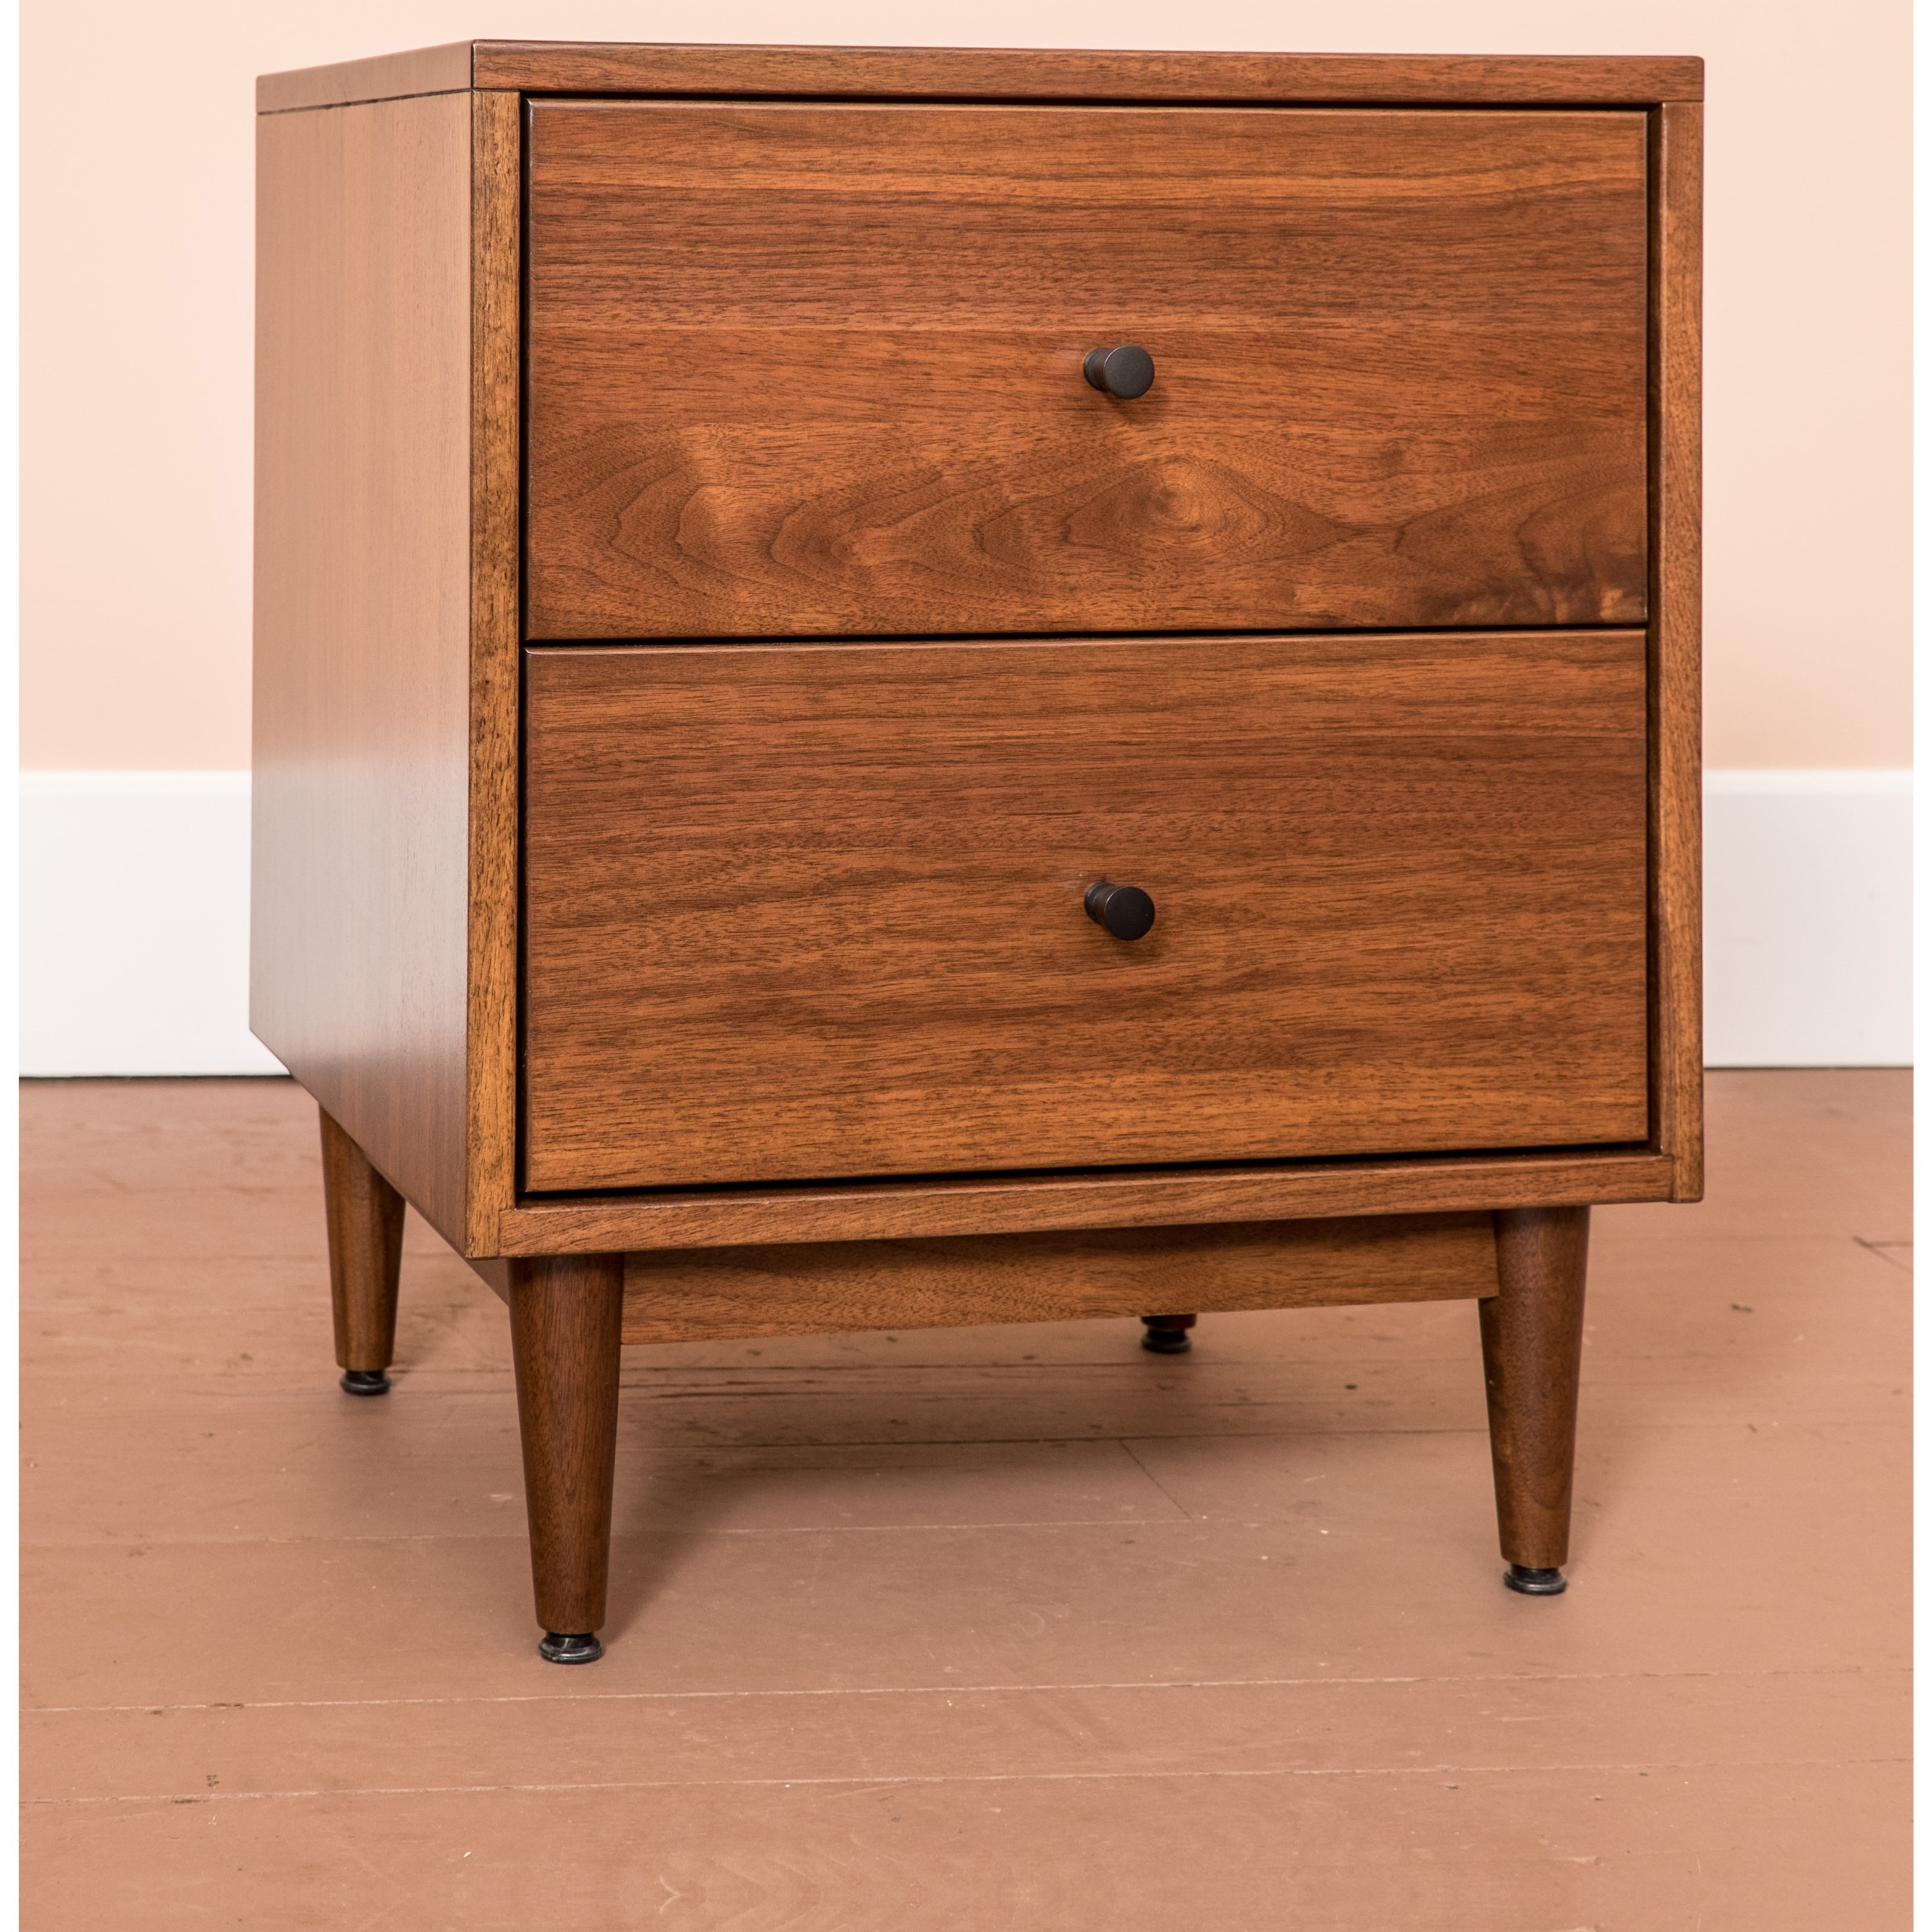 Sullivan Road Customizable 2-Drawer Nightstand by Glenmont Furniture at Saugerties Furniture Mart